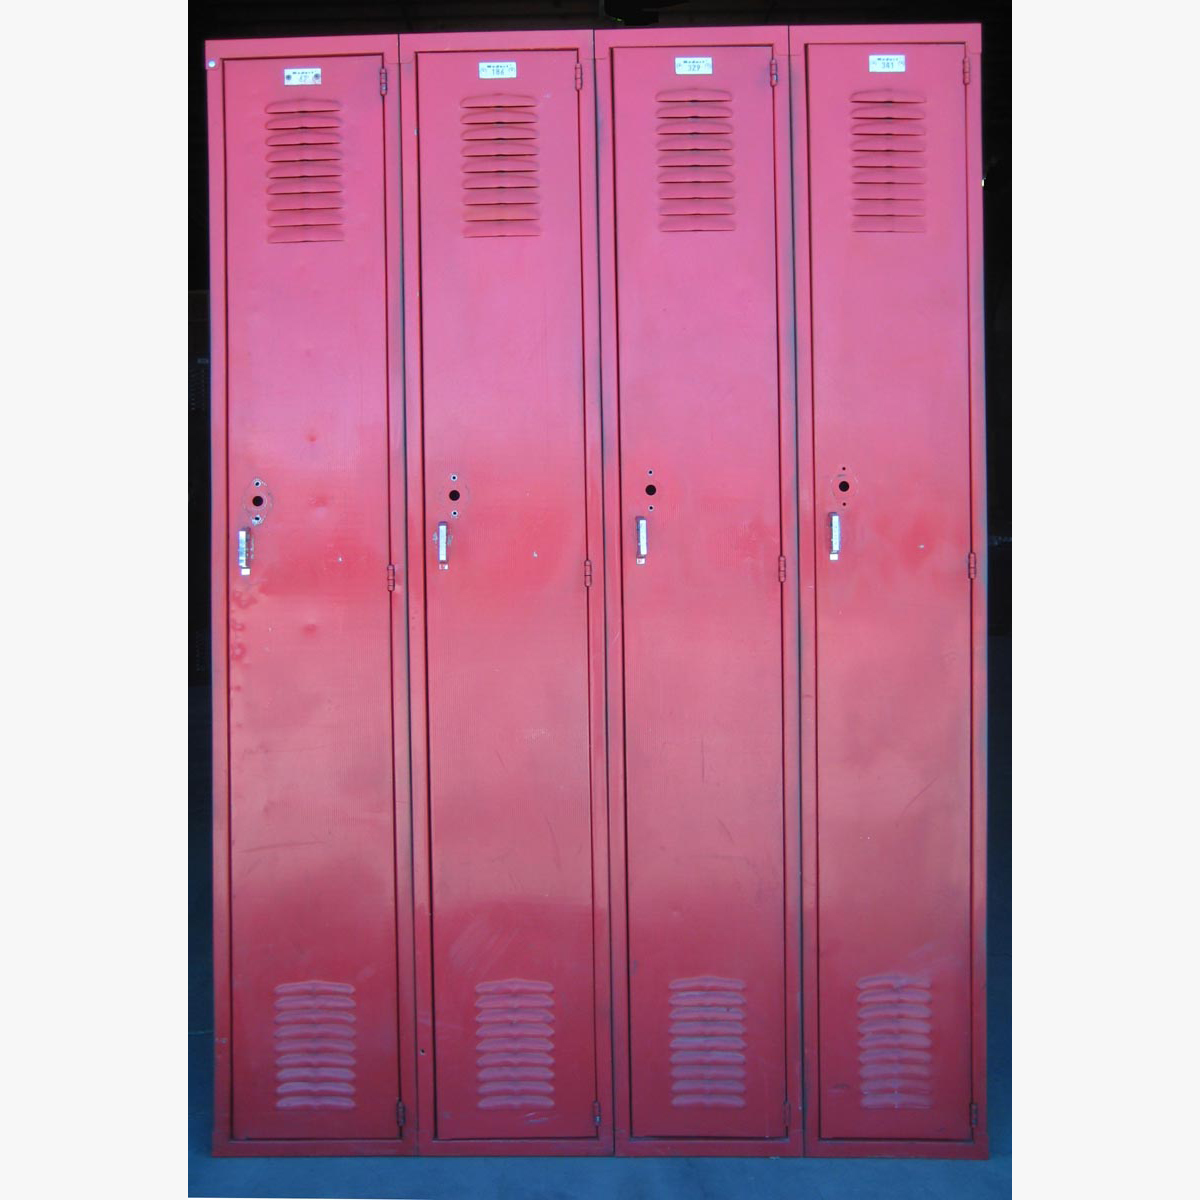 Penco Lockers | Colored Lockers | Locker Dimensions Gym